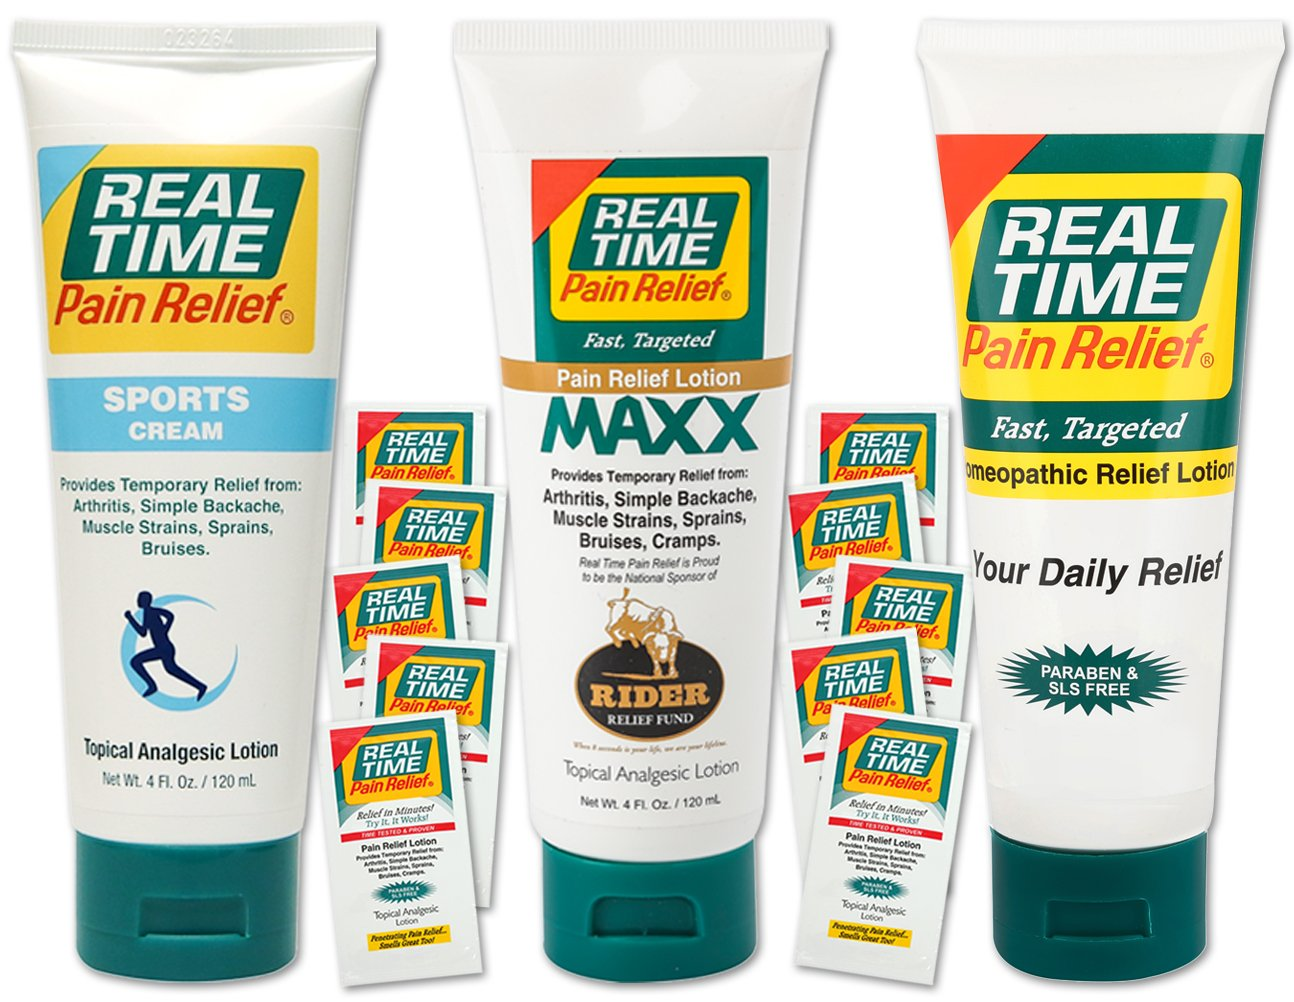 Real Time Pain Relief Stay Active Pack, Sports Cream, Daily Relief, MAXX Relief, 10 Pain Cream Travel Packs by Real Time Pain Relief (Image #1)